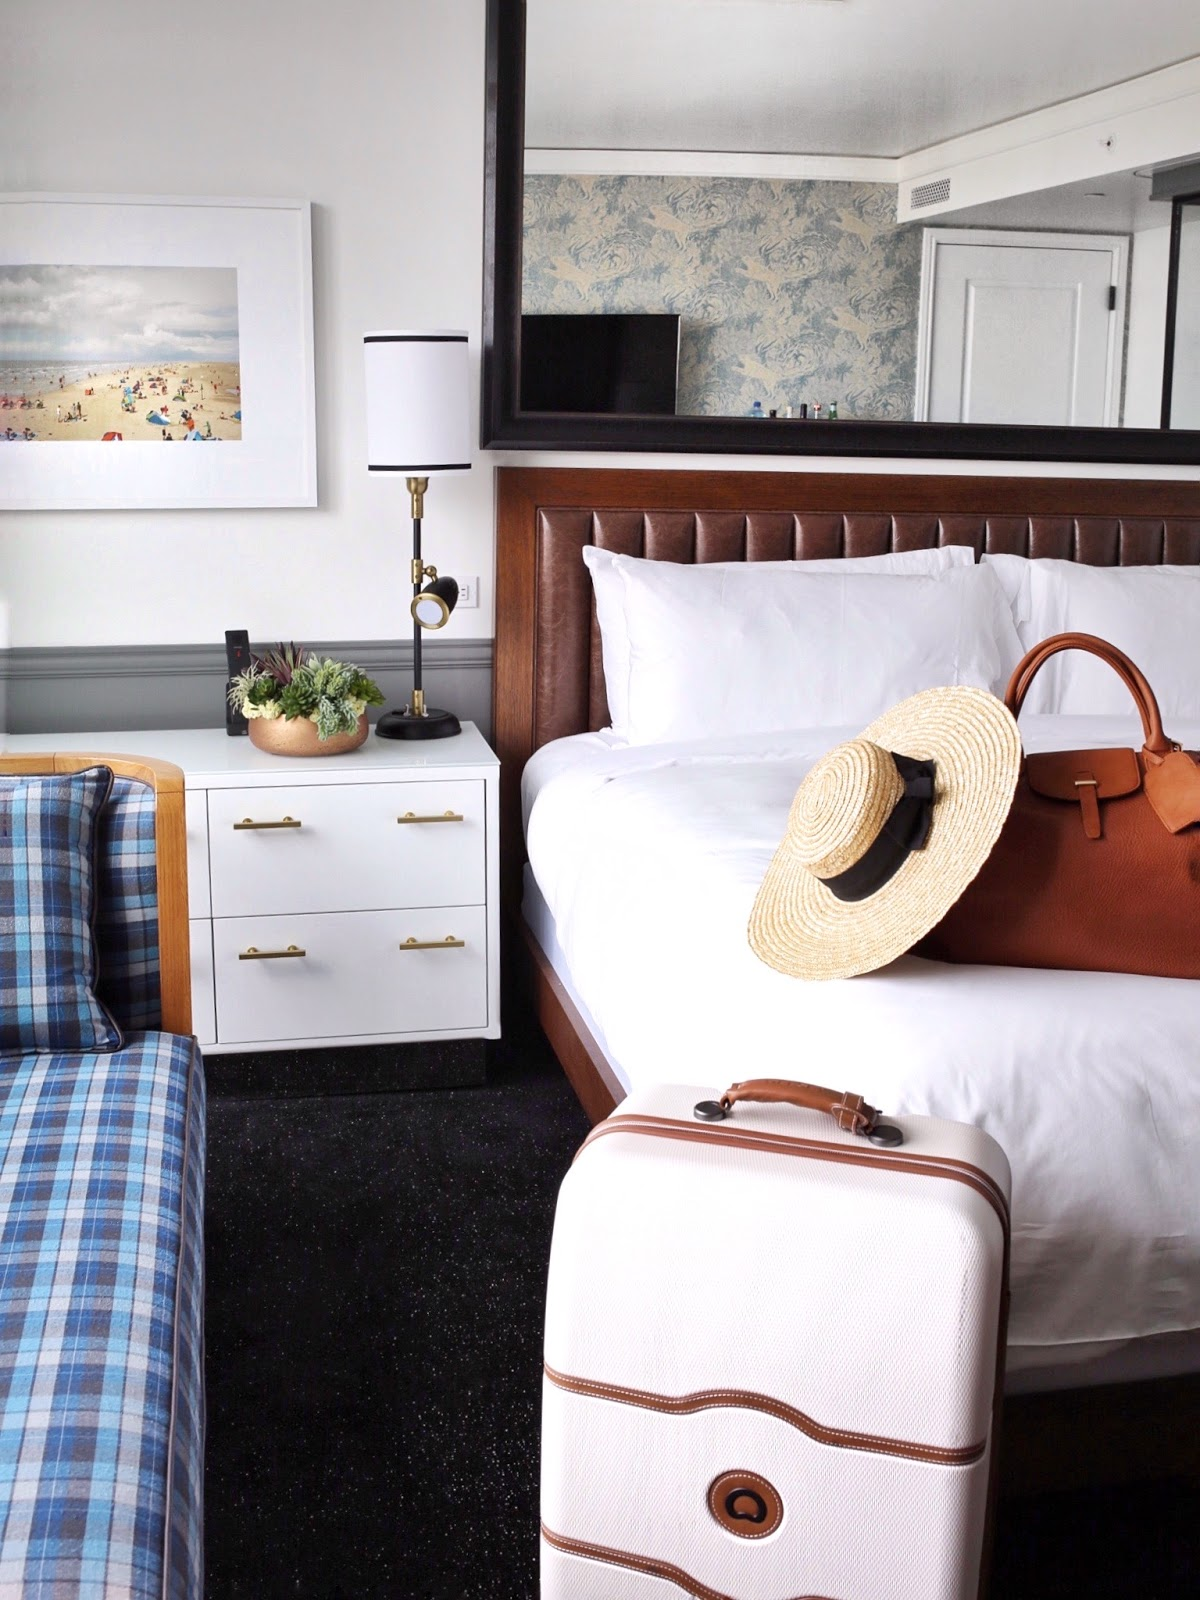 Pendry Hotel Review: Where To Stay In San Diego